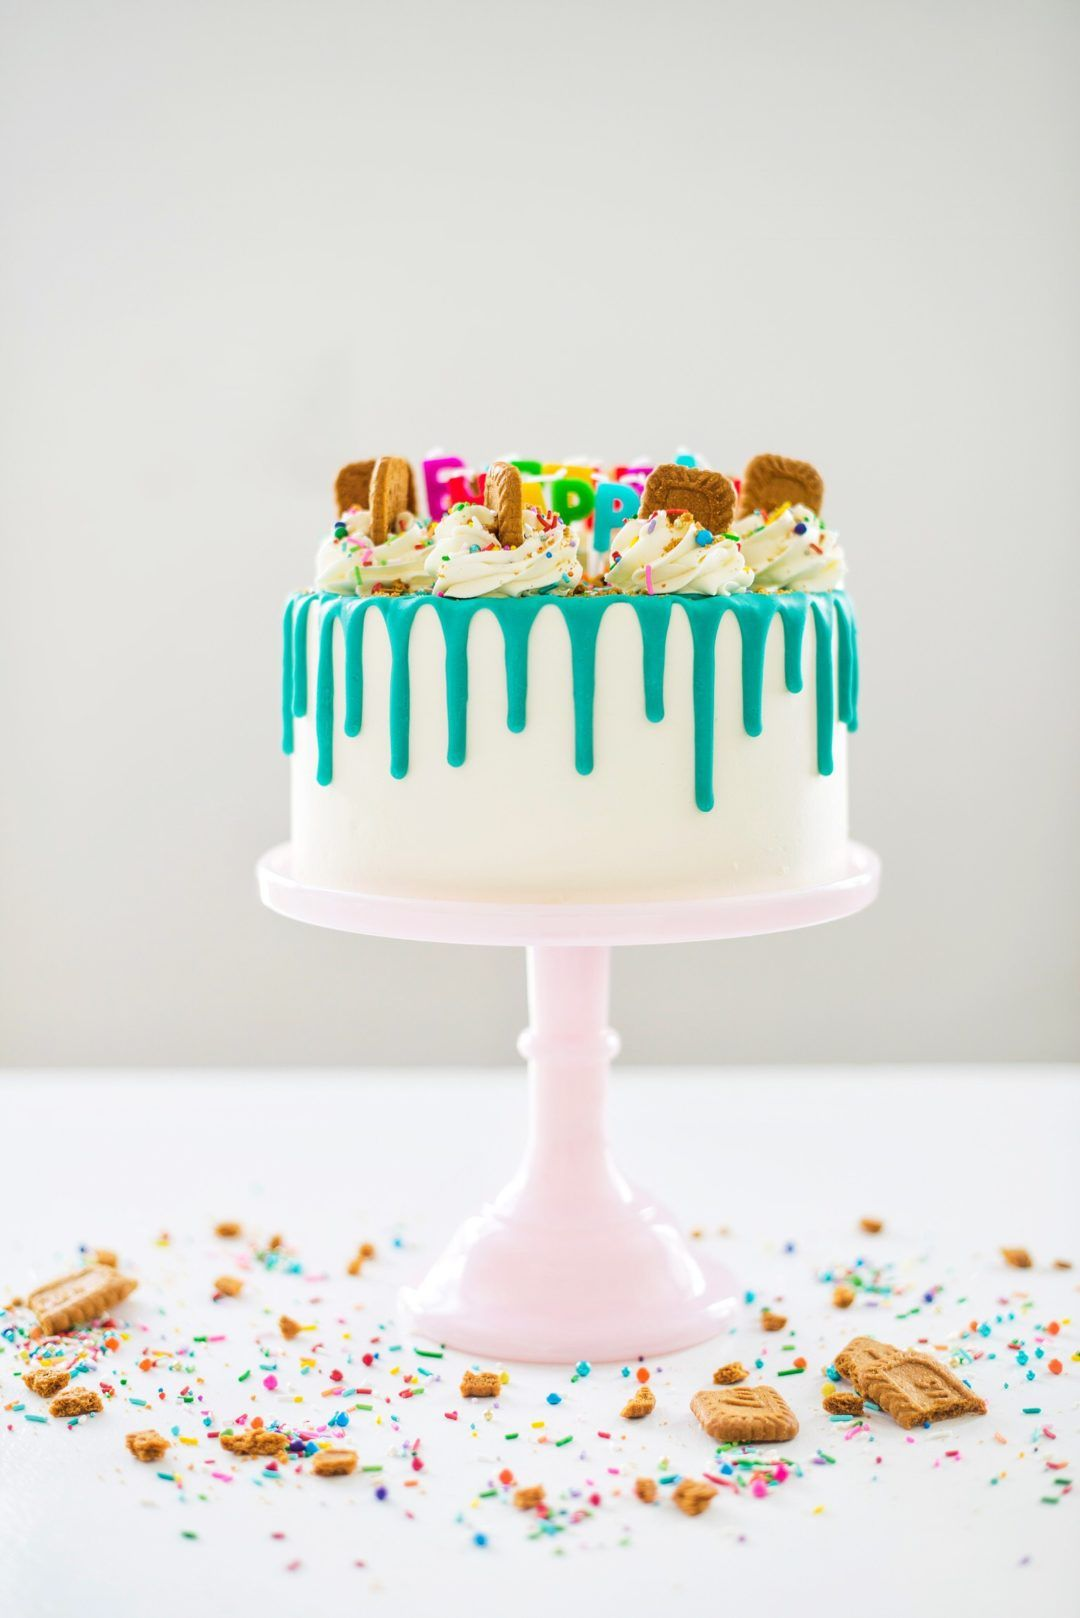 How To Make The Perfect Birthday Cake With Images Biscoff Cake